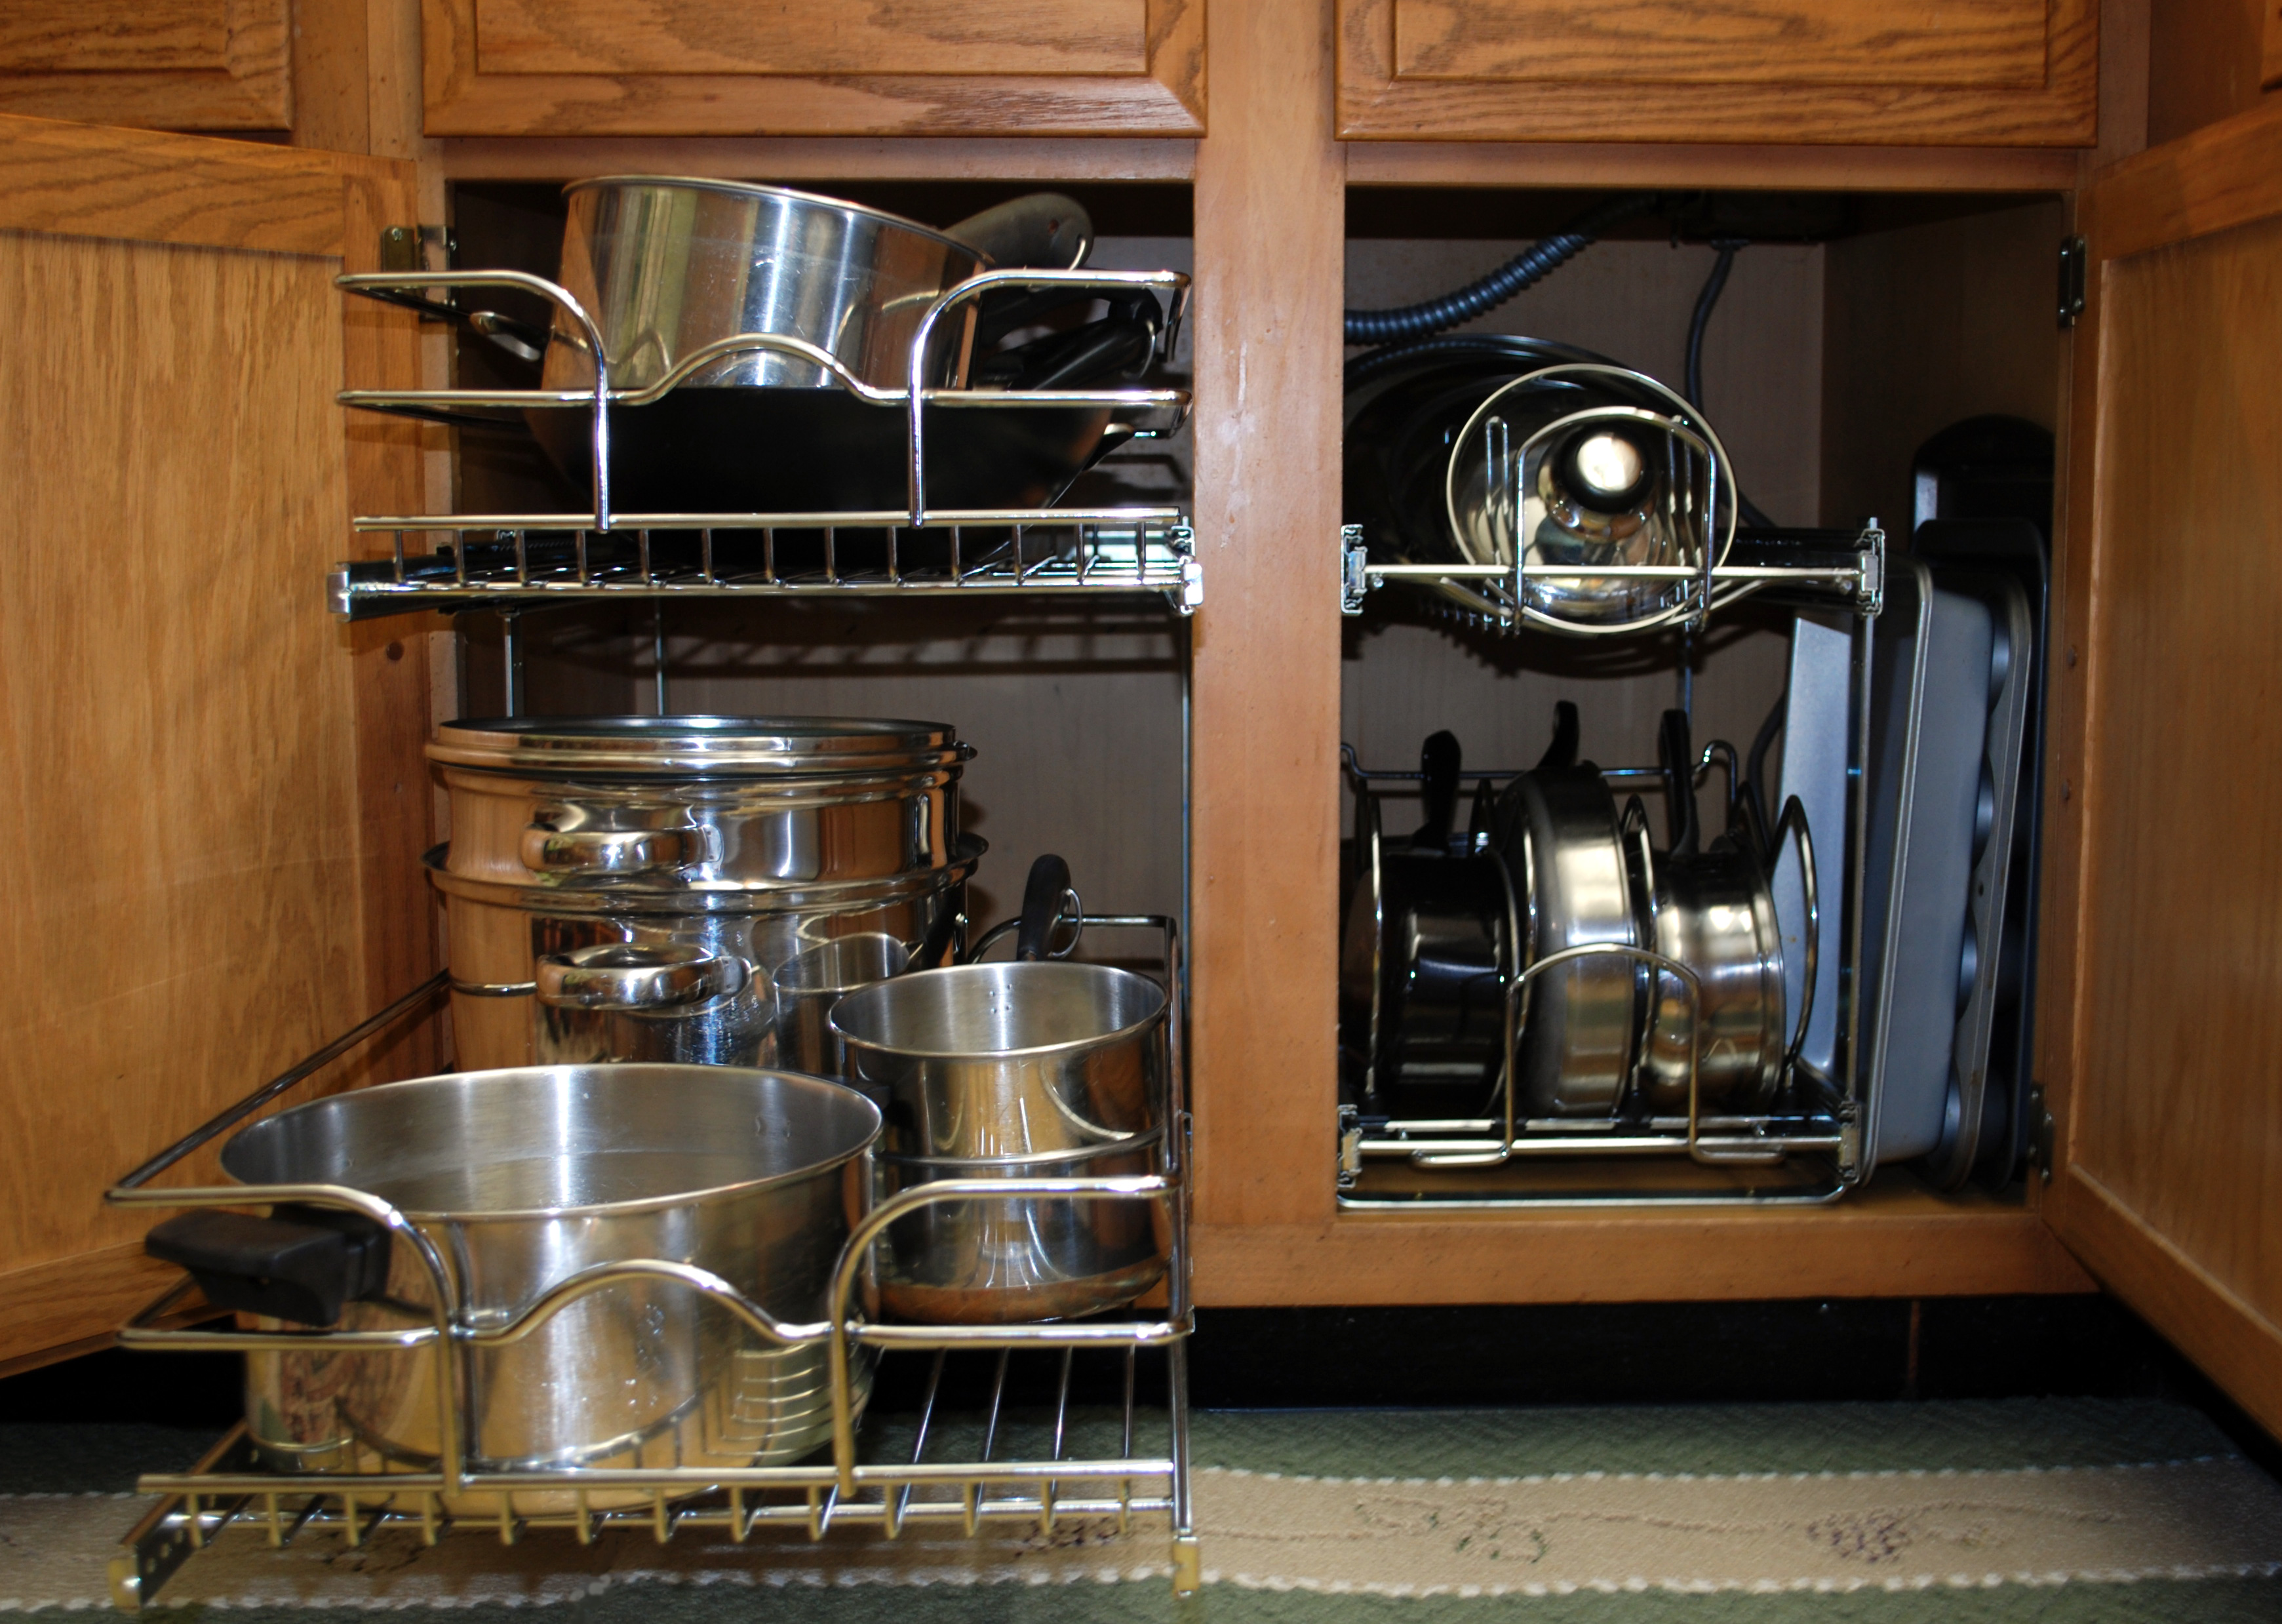 Hardware organizers reinvent Best way to organize kitchen cabinets and drawers